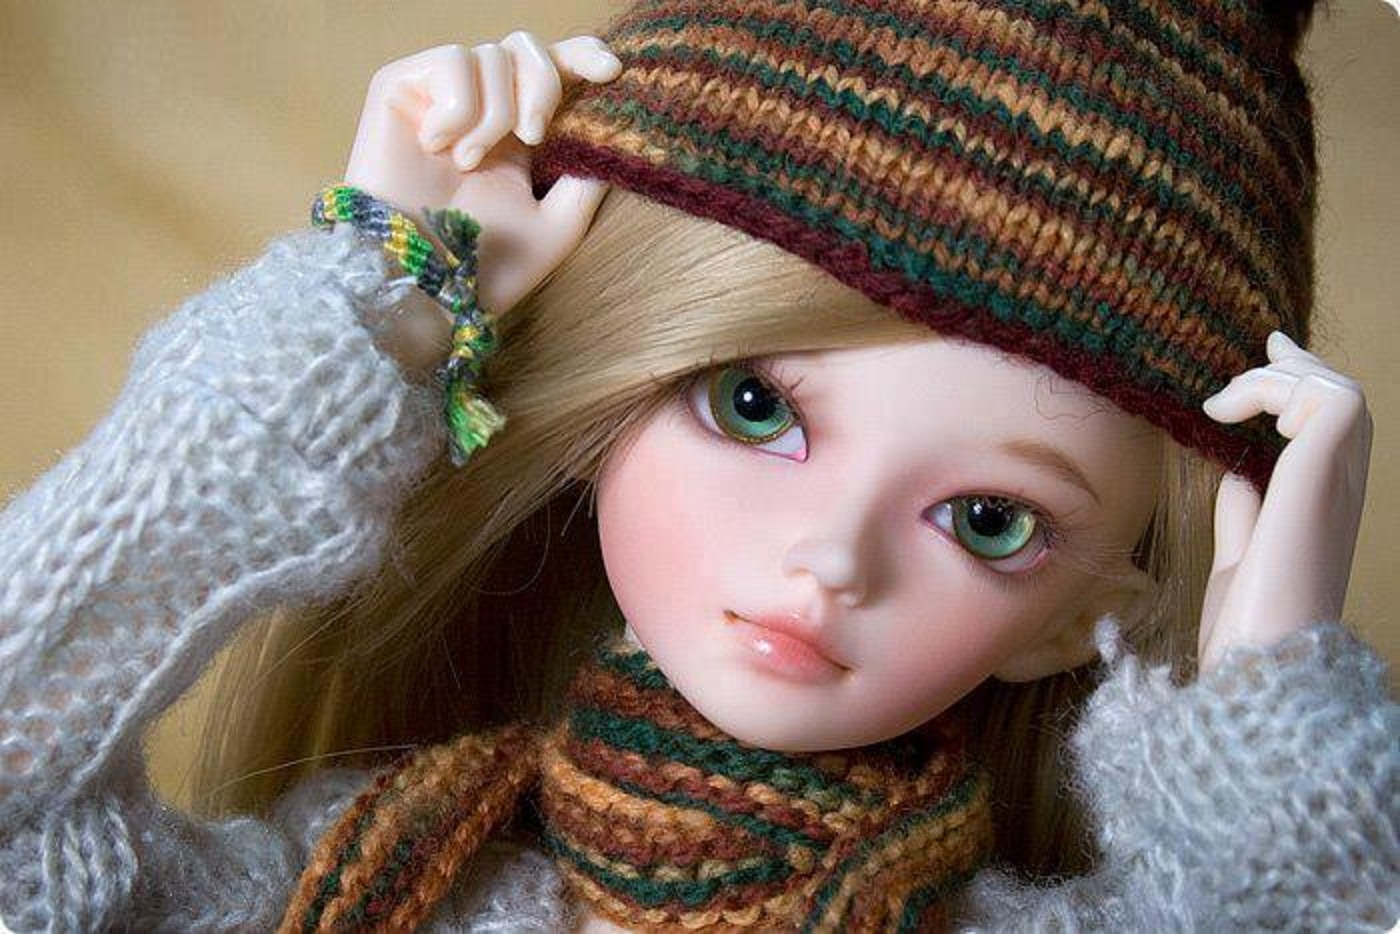 Cute Baby Barbie Doll Wallpaper Beautiful Desktop Hd Wallpapers